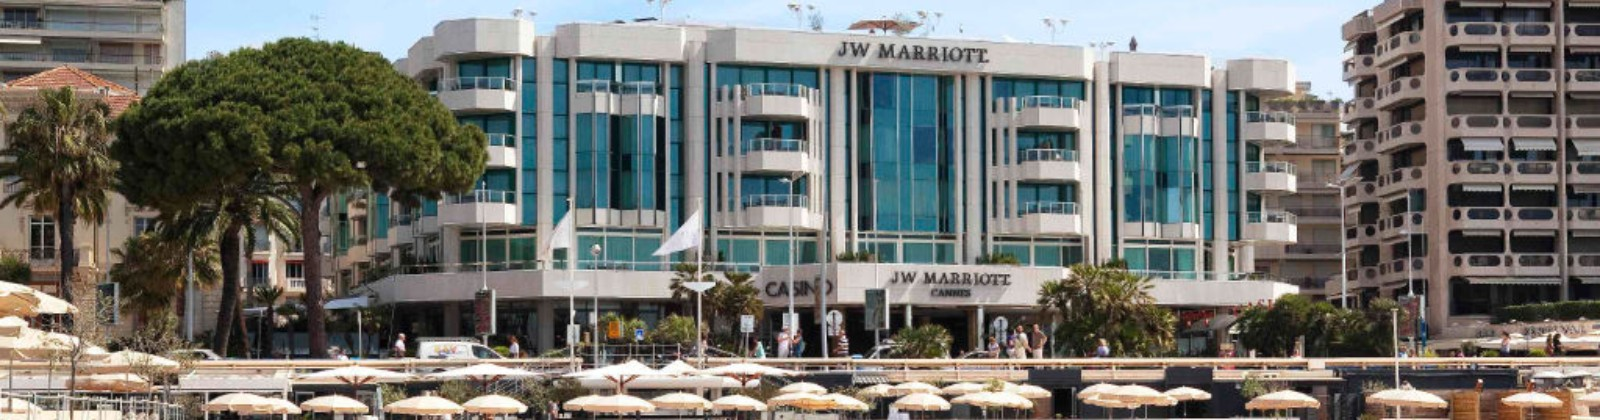 jw marriott cannes oleven hotel restaurant